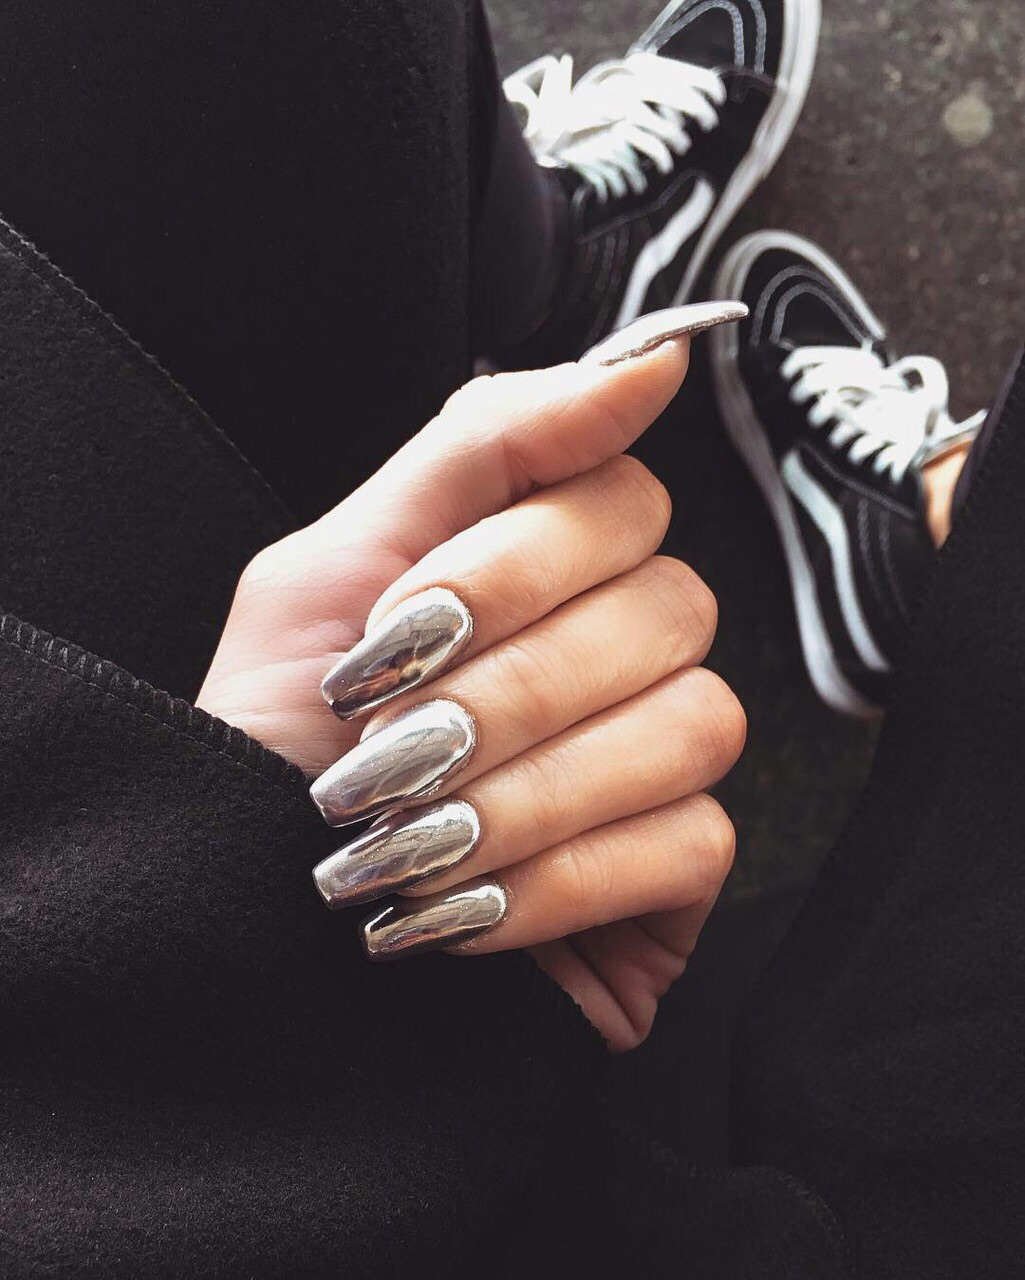 hands, nails goals, claws inspo and beauty